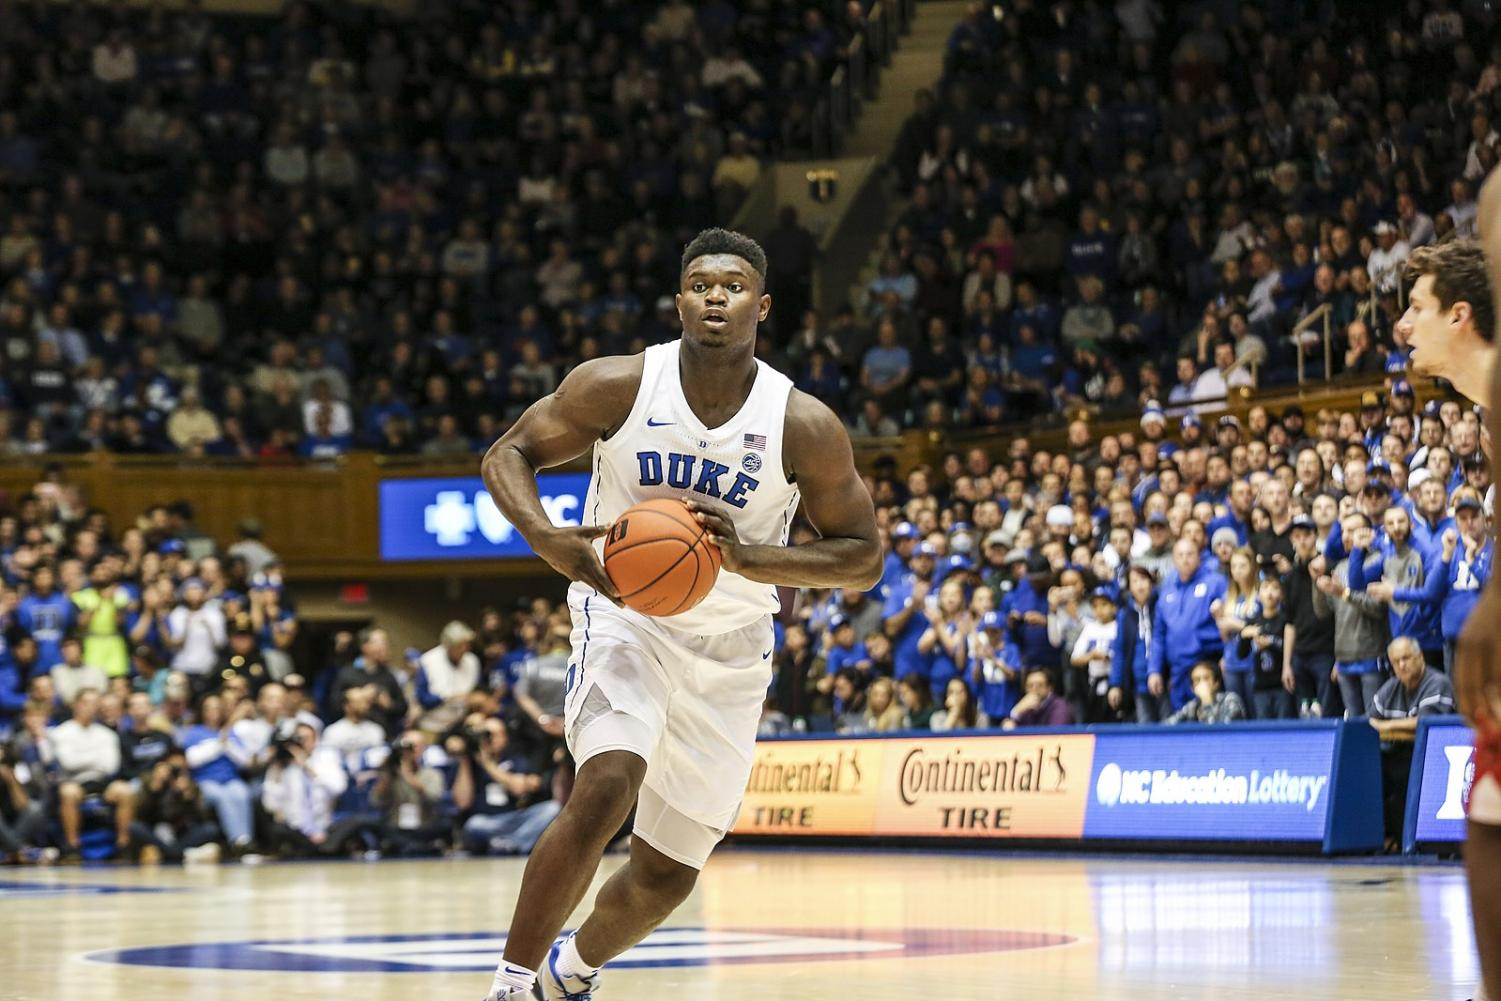 After Duke University's Zion Williamson sprained his knee in February 2019, it sparked discussion about whether or not student athletes should be paid.